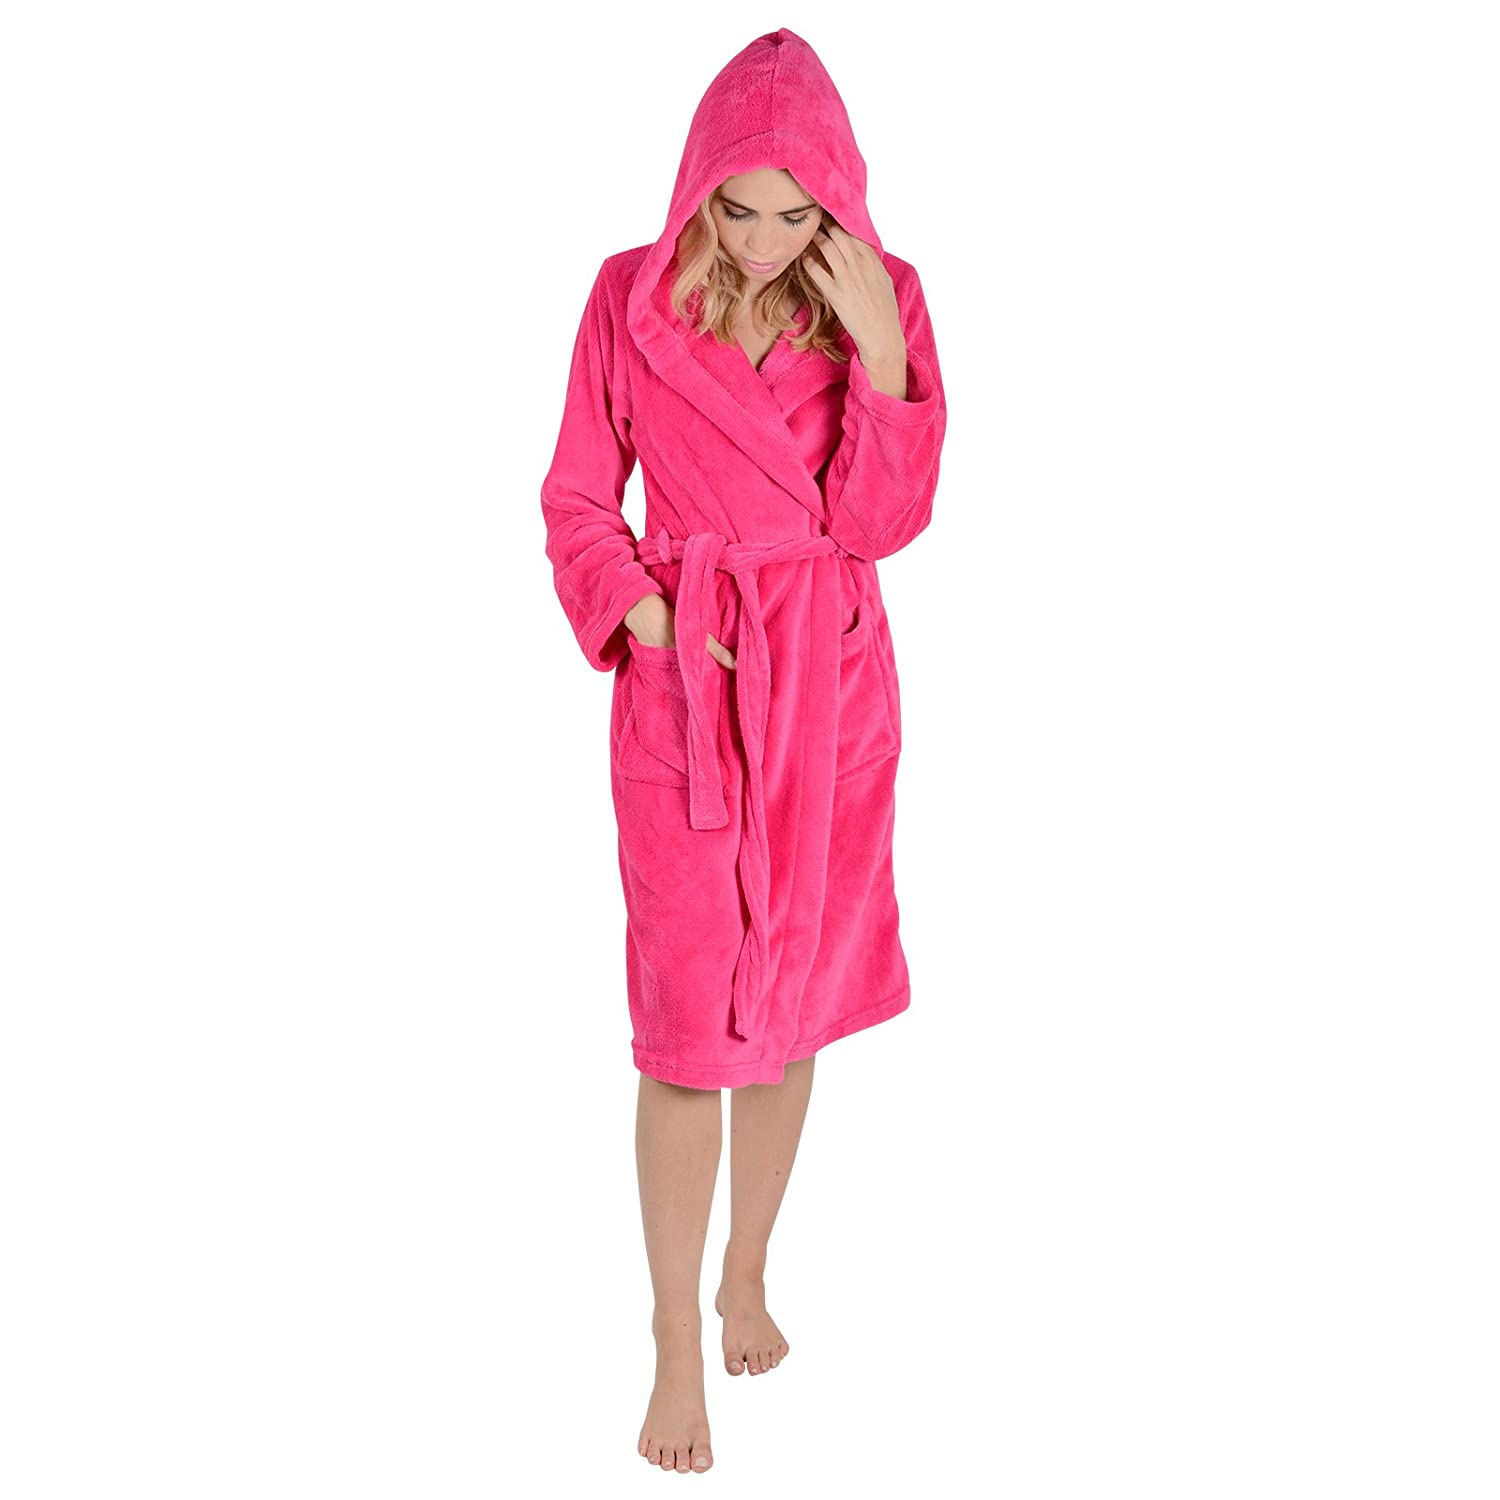 e312b2c69bc Ladies Coral Fleece Super Soft Thick Luxurious Bath Robe With Hood Dressing  Gown Wrap Housecoat Bathrobe  Amazon.co.uk  Clothing